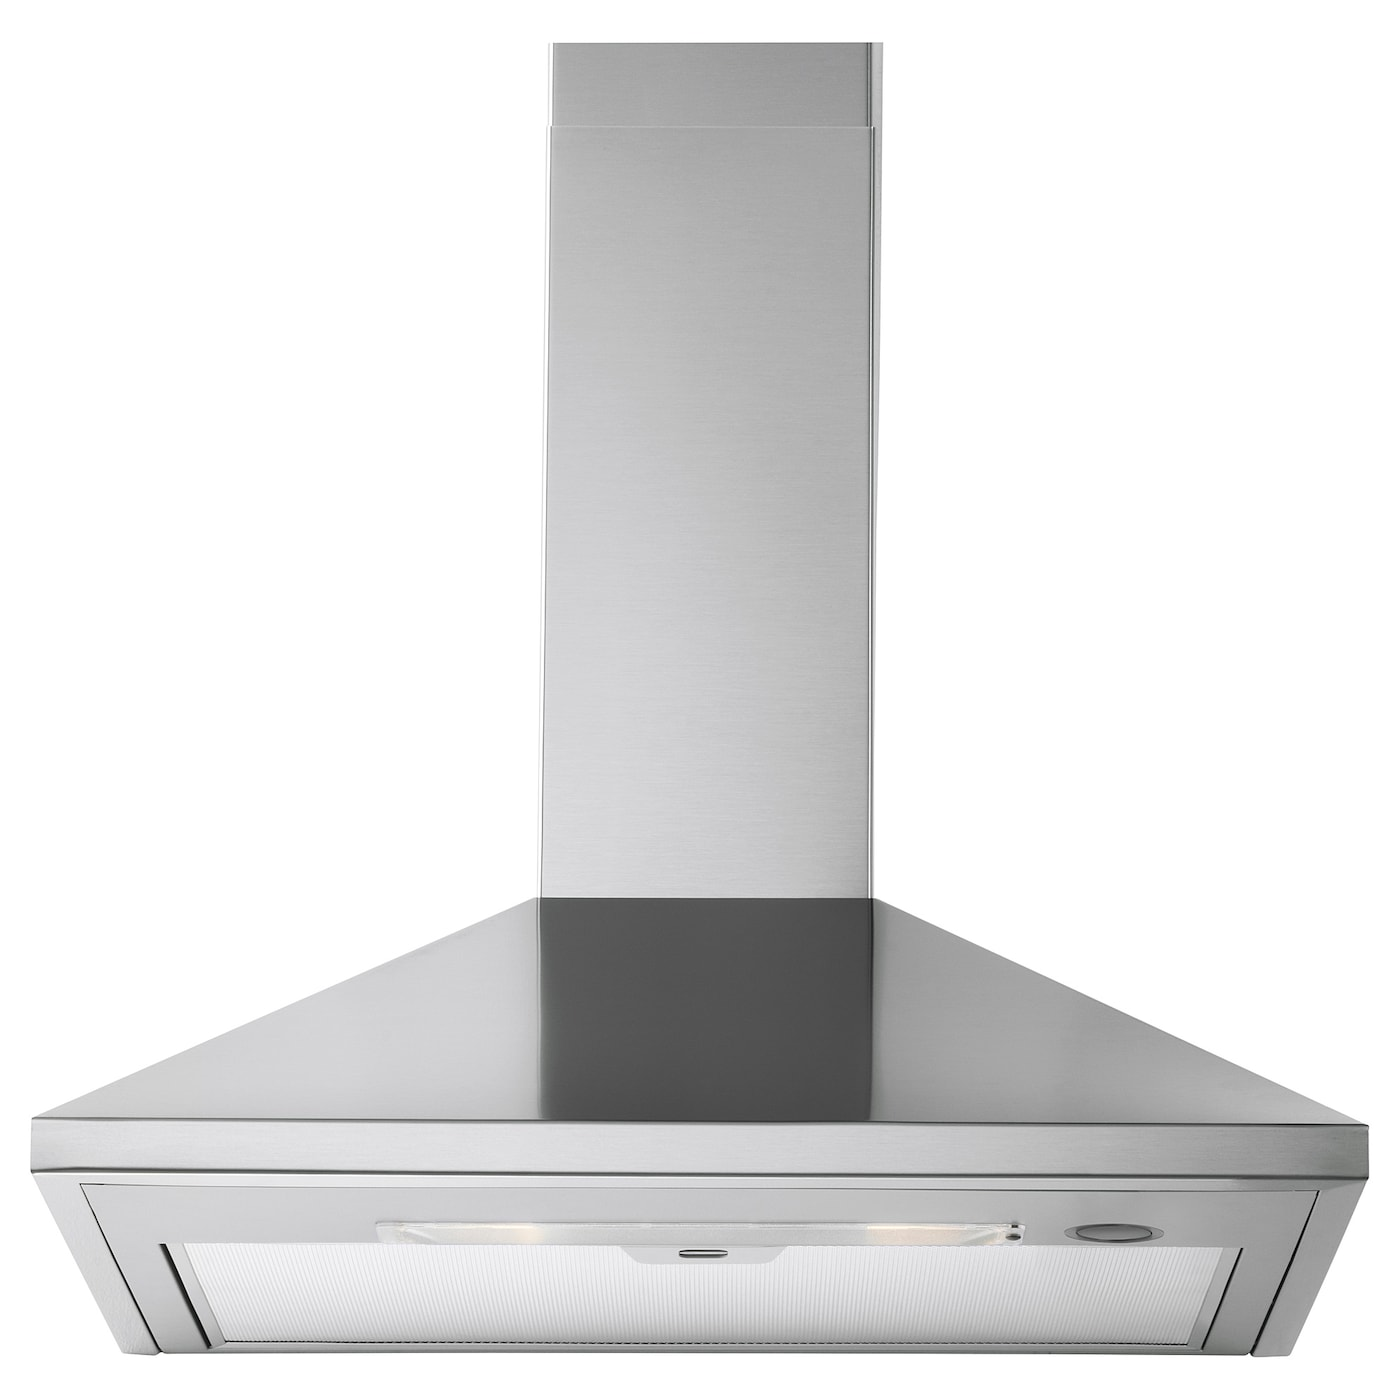 IKEA RYTMISK wall mounted extractor hood